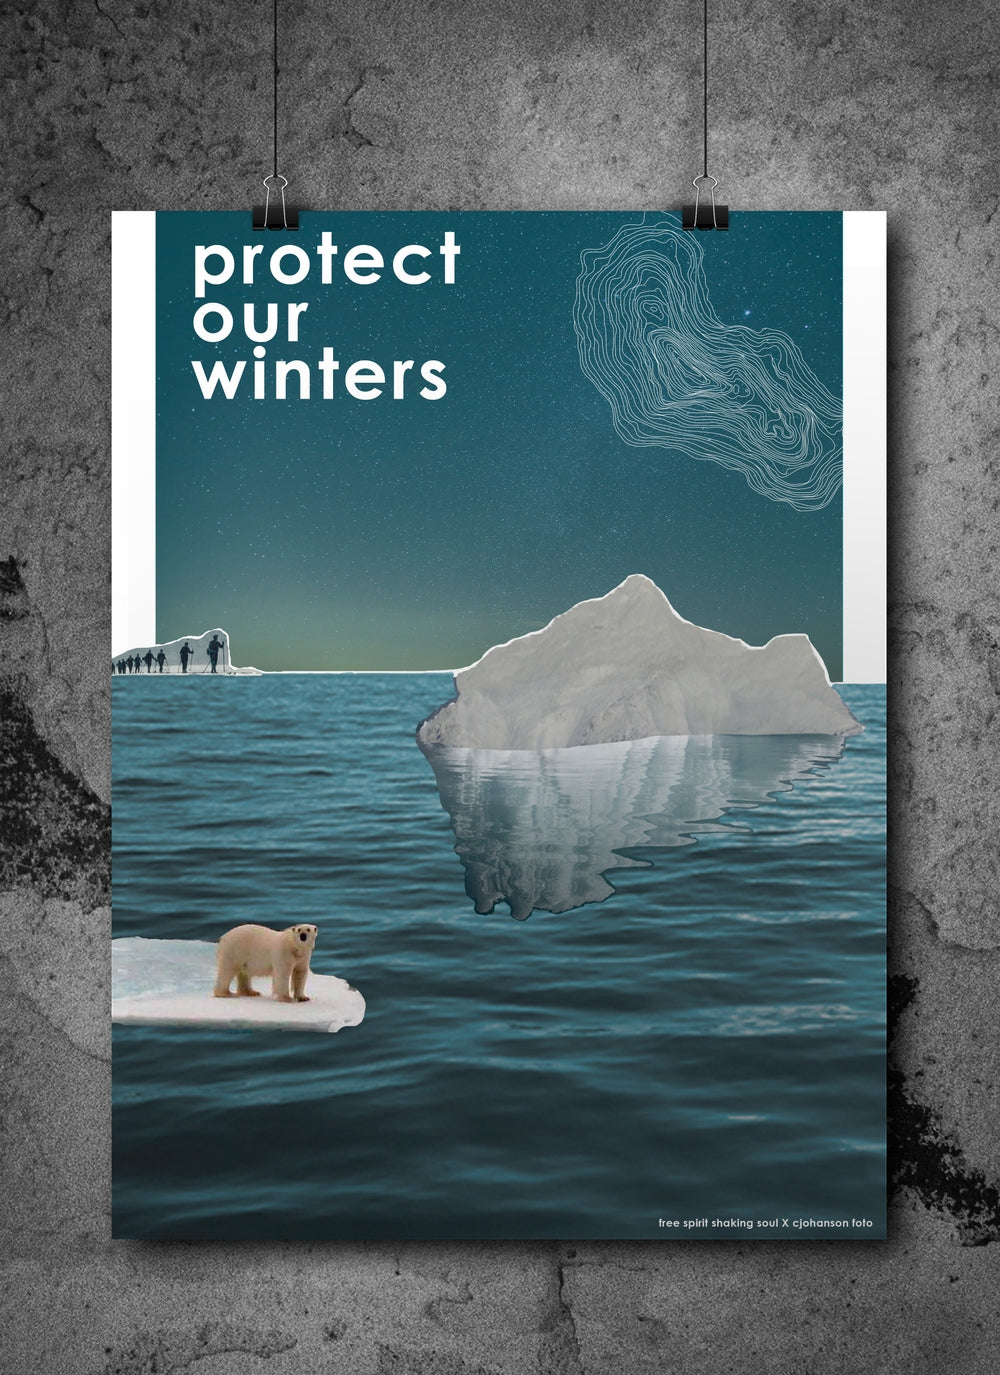 Statement poster: Protect our winter